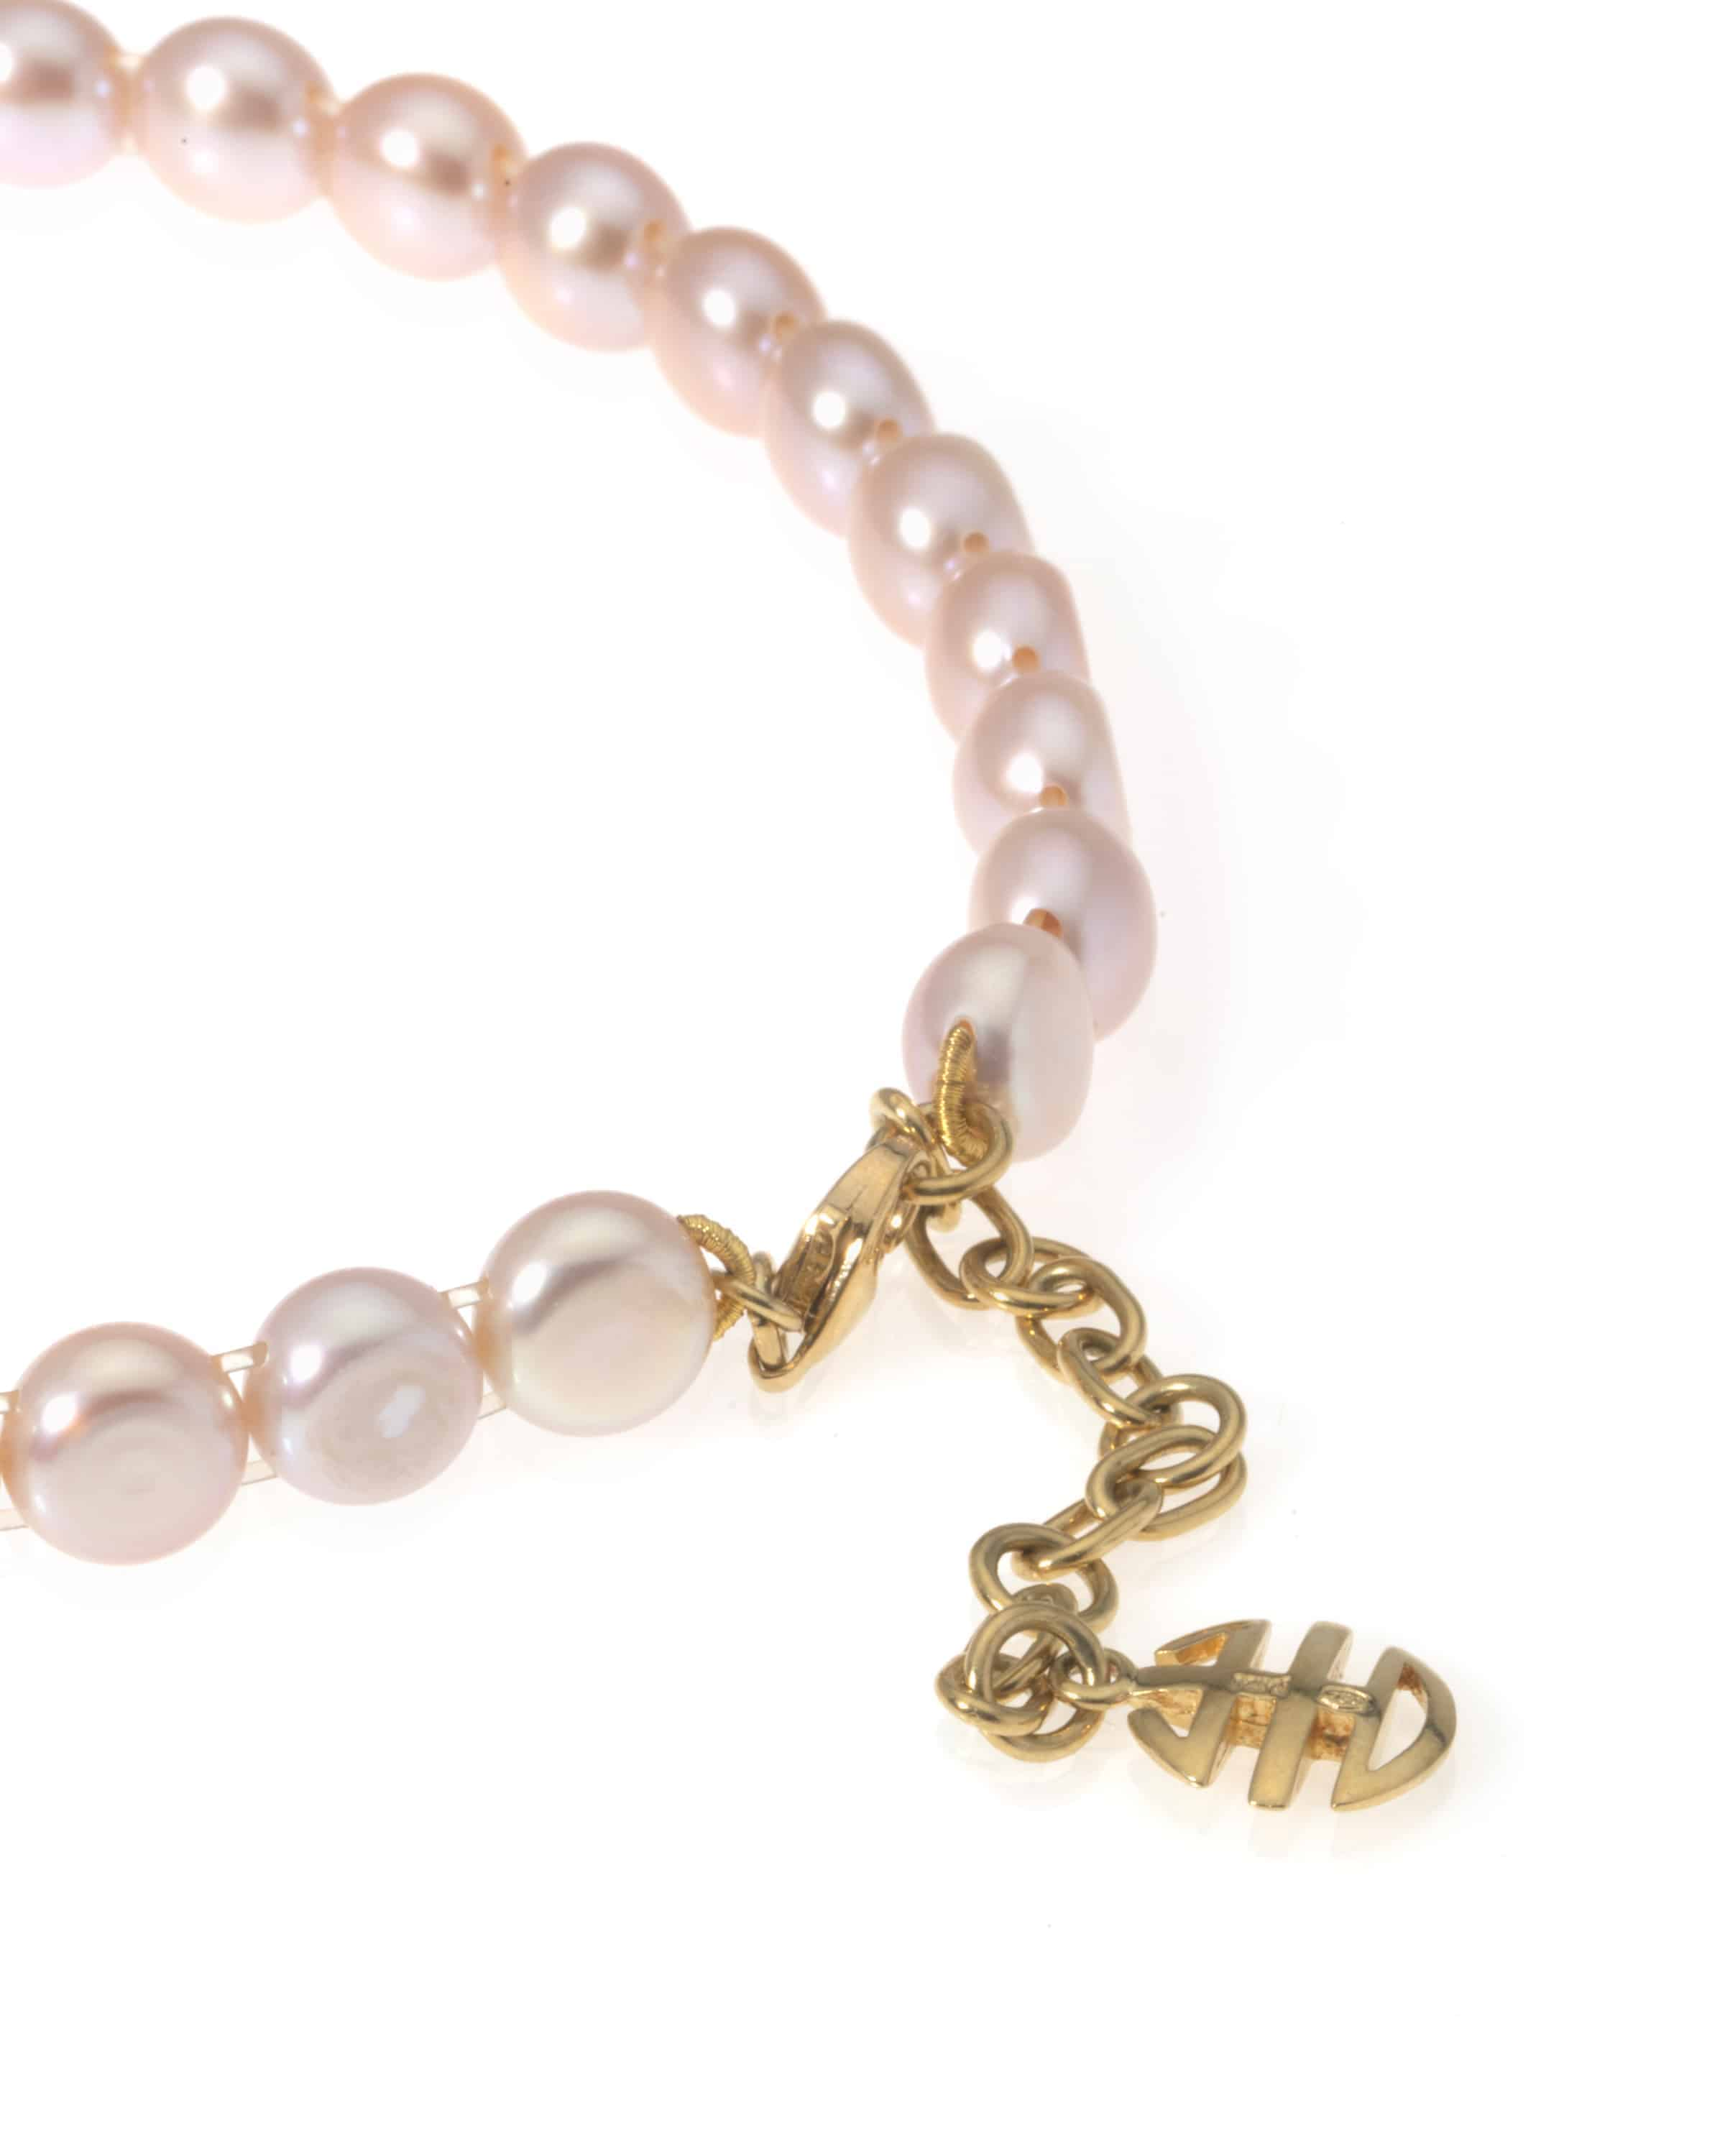 Mimi Milano 18k Yellow Gold Pearl Necklace C023A03-178